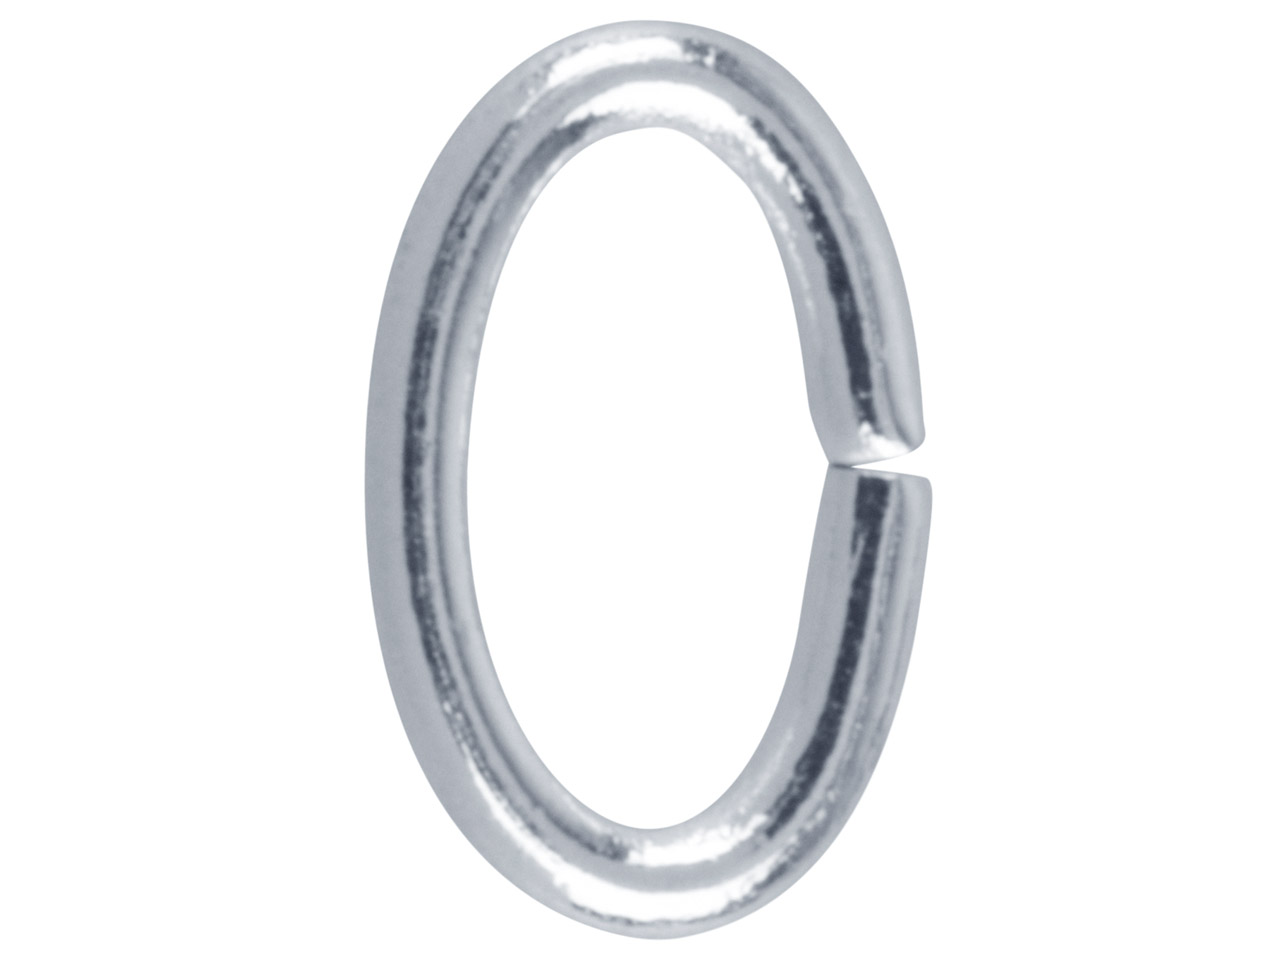 Silver Plated Jump Ring Oval 9.4mm Pack of 100,